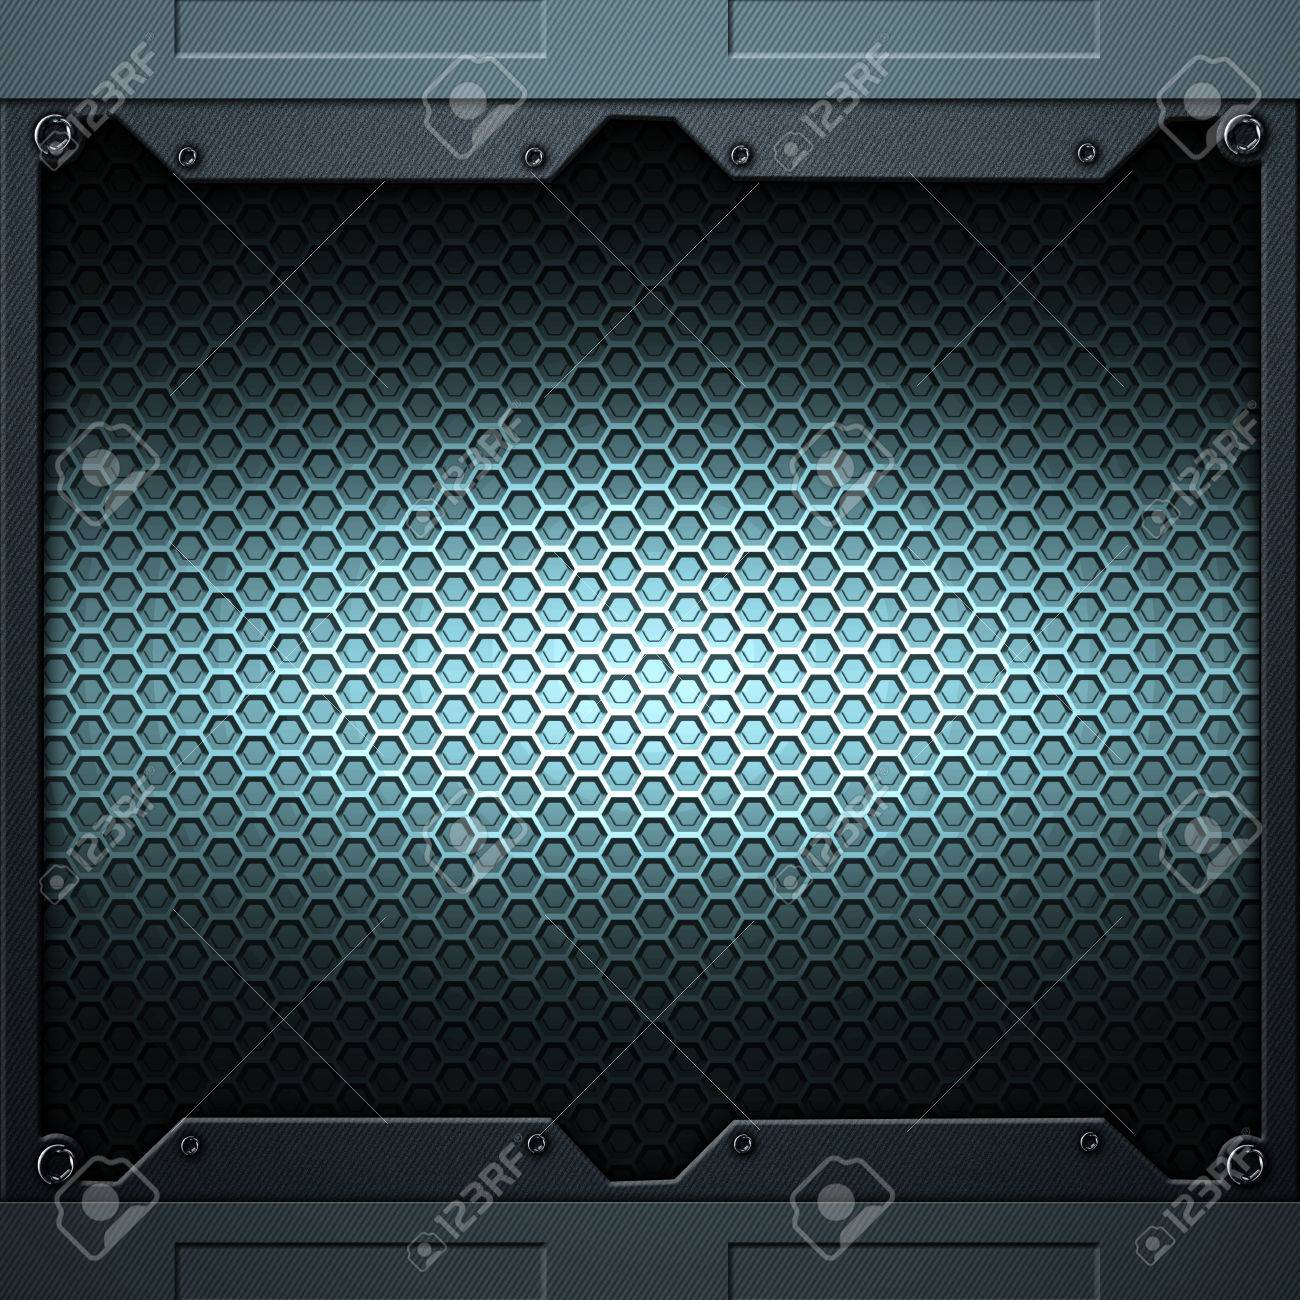 sci fi wall texture. Interesting Wall Illustration  Scifi Wall Carbon Fiber Wall And Rivet Metal Background  Texture 3d Illustration Technology Concept On Sci Fi Wall Texture